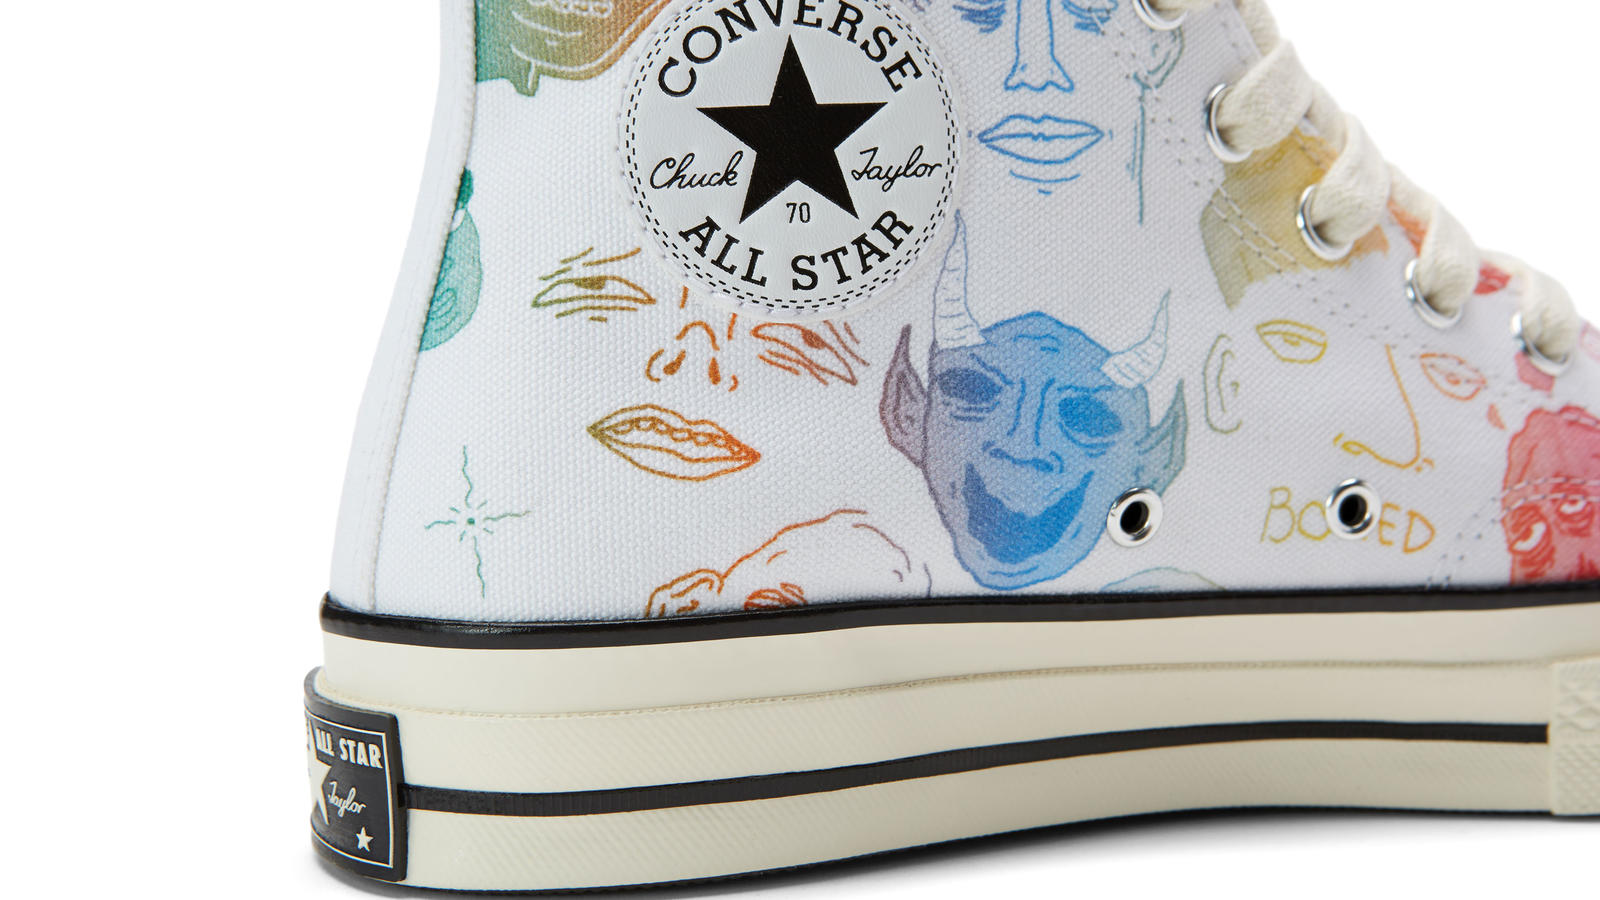 Converse 22383 Fl Artist Series Pdp Images1683 1